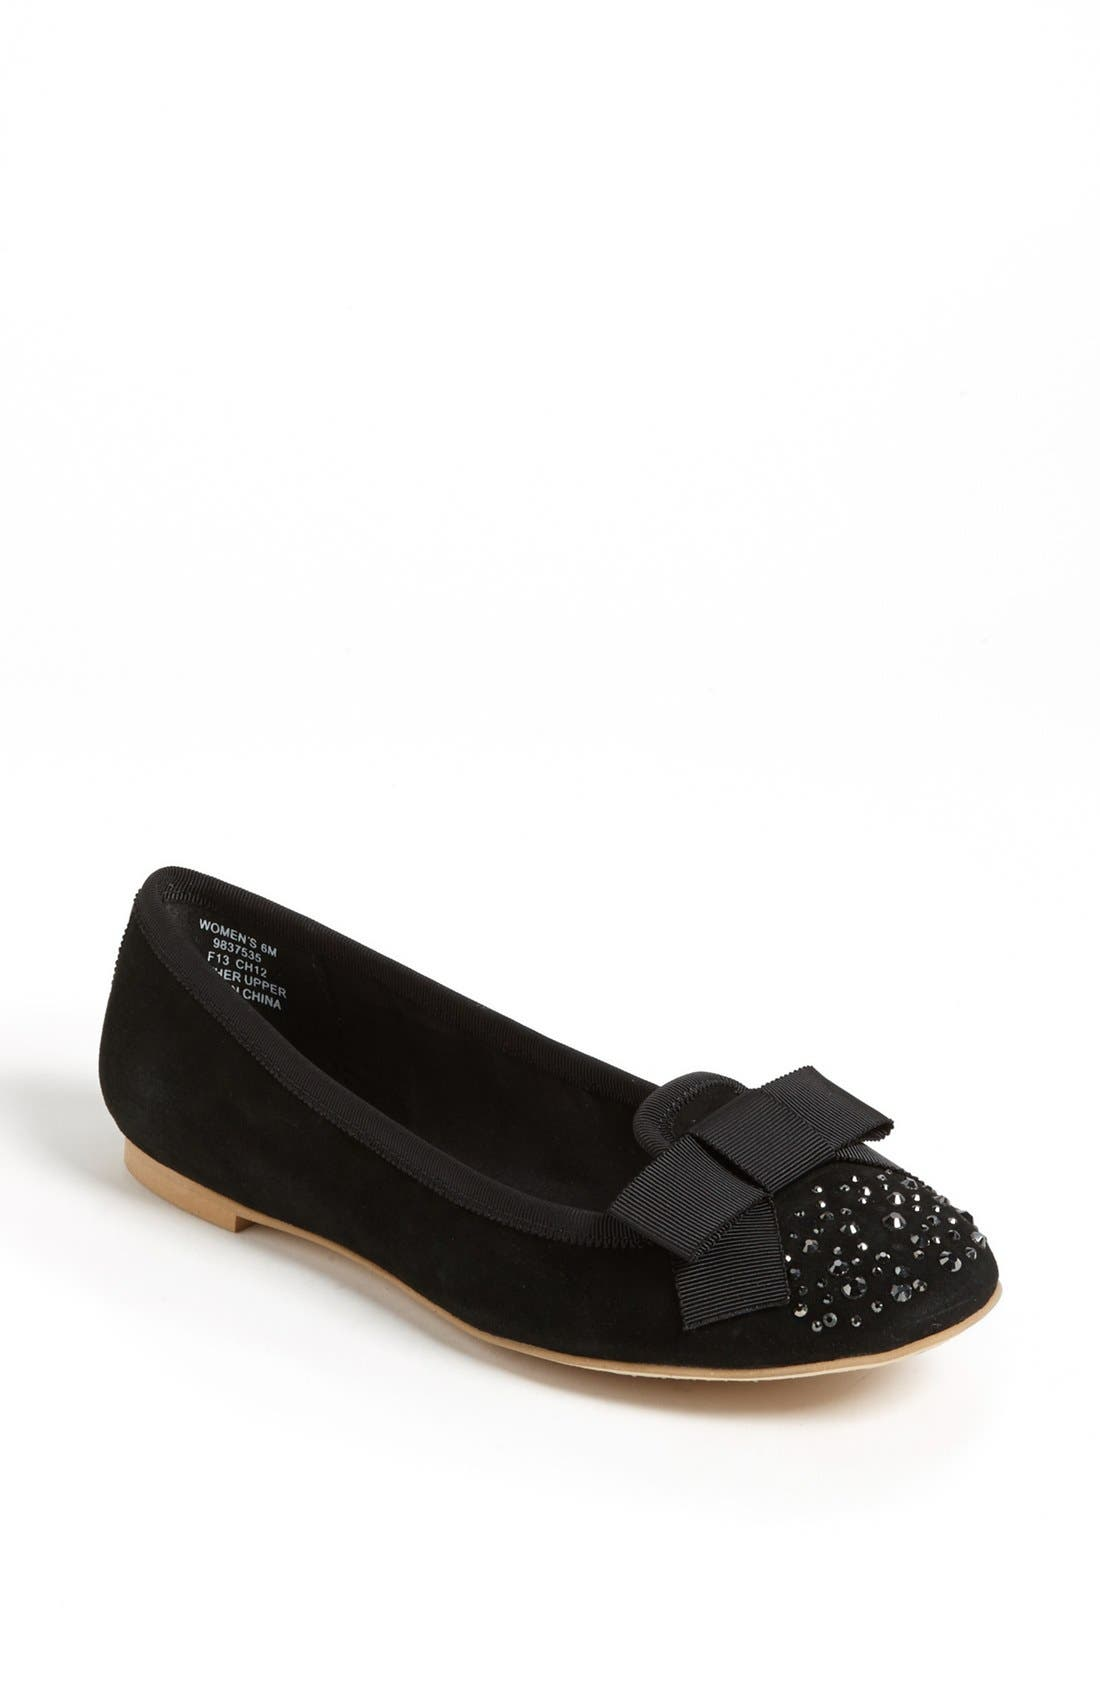 Alternate Image 1 Selected - Sperry Top-Sider® 'Sophie' Flat